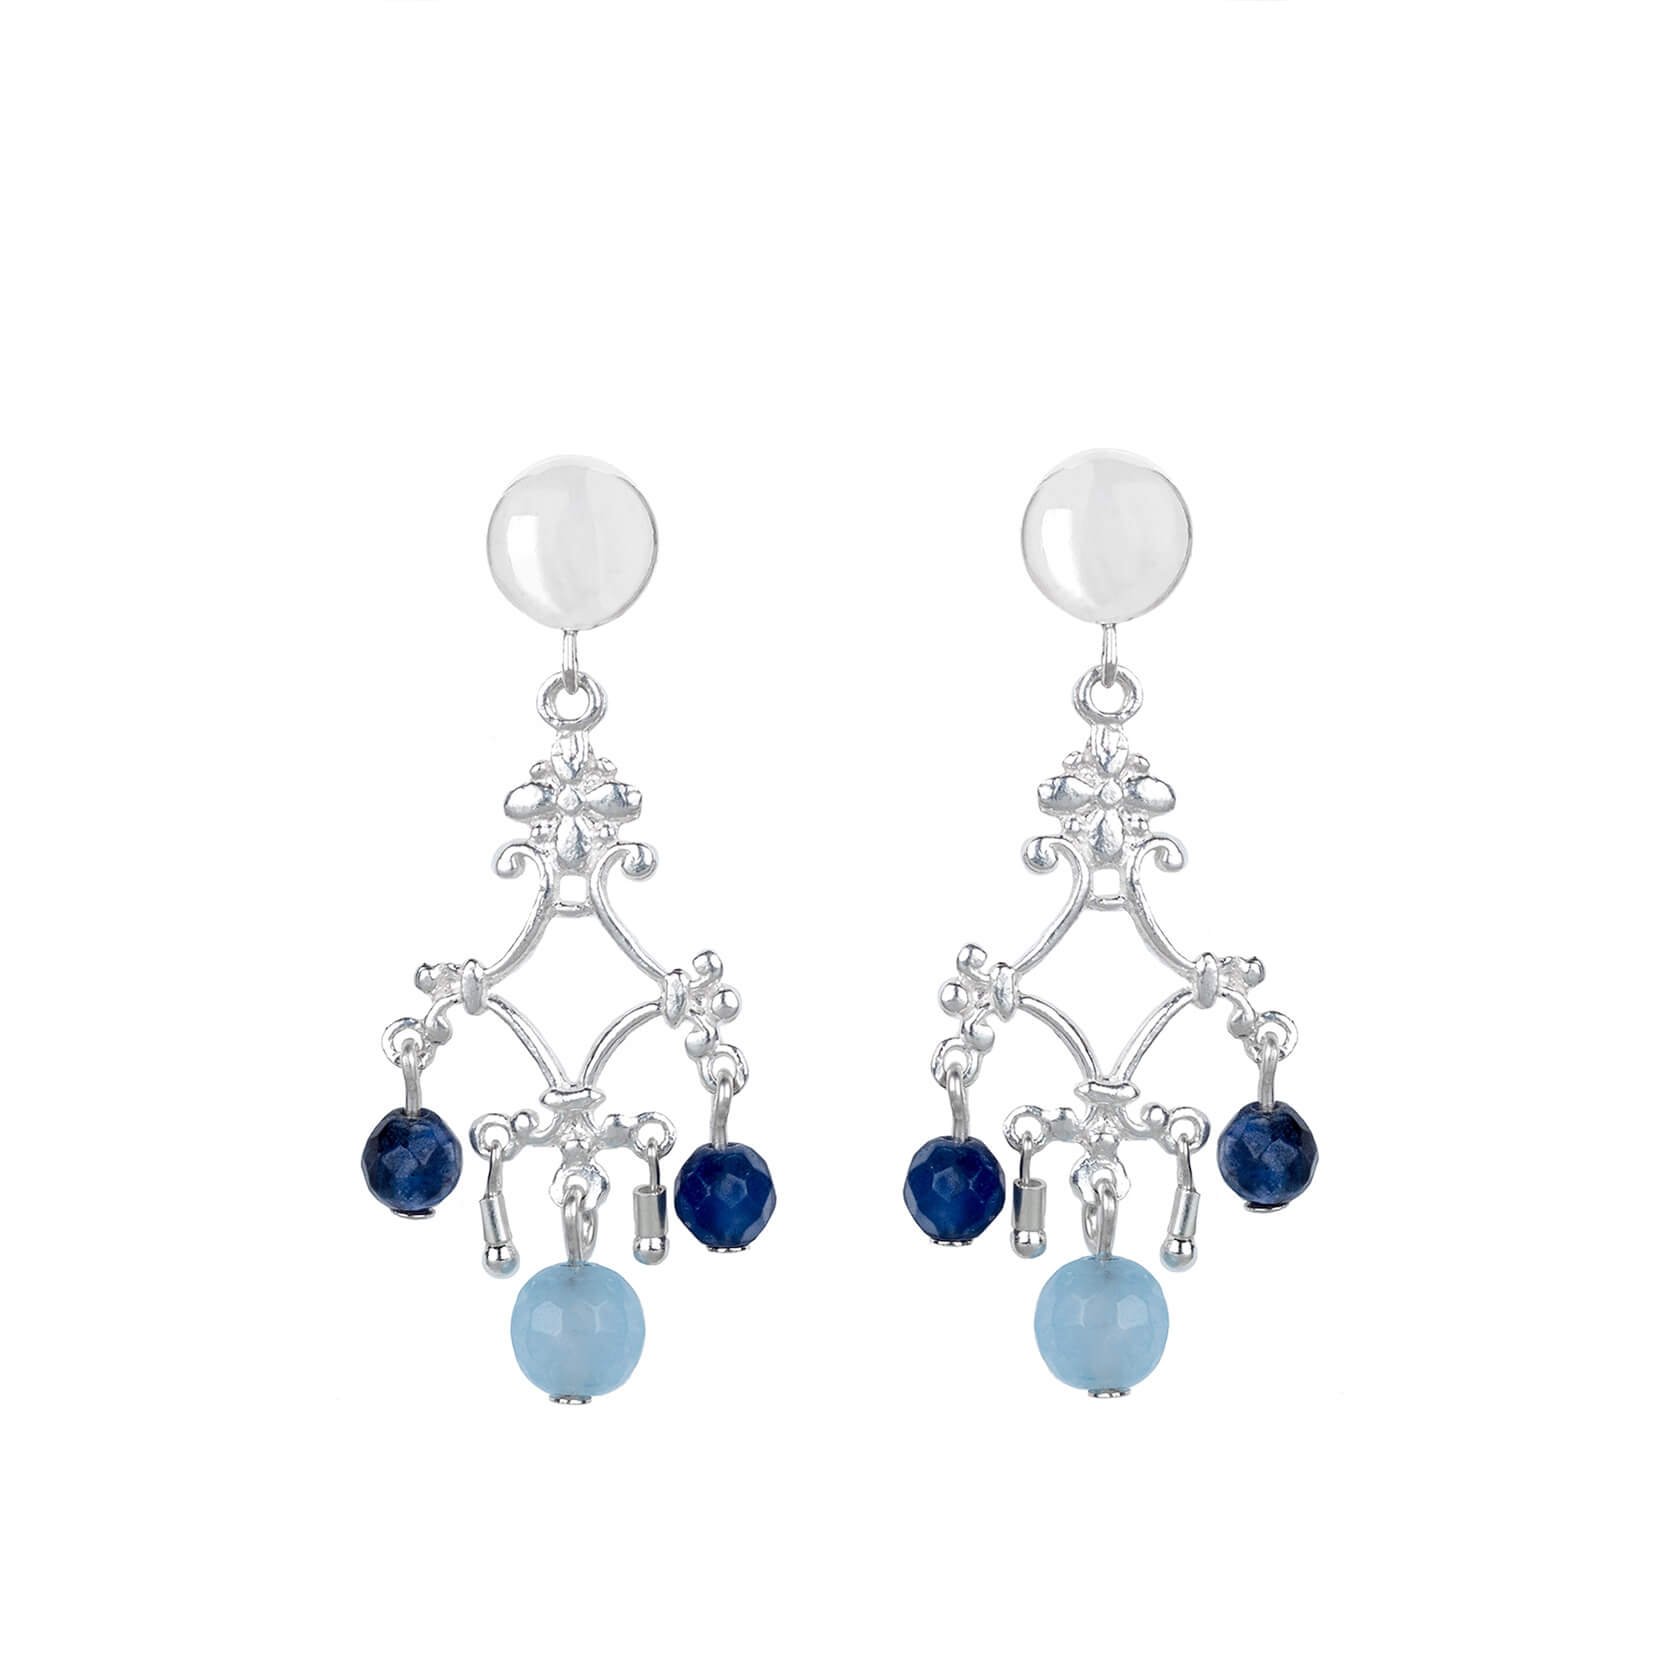 Angelite earrings